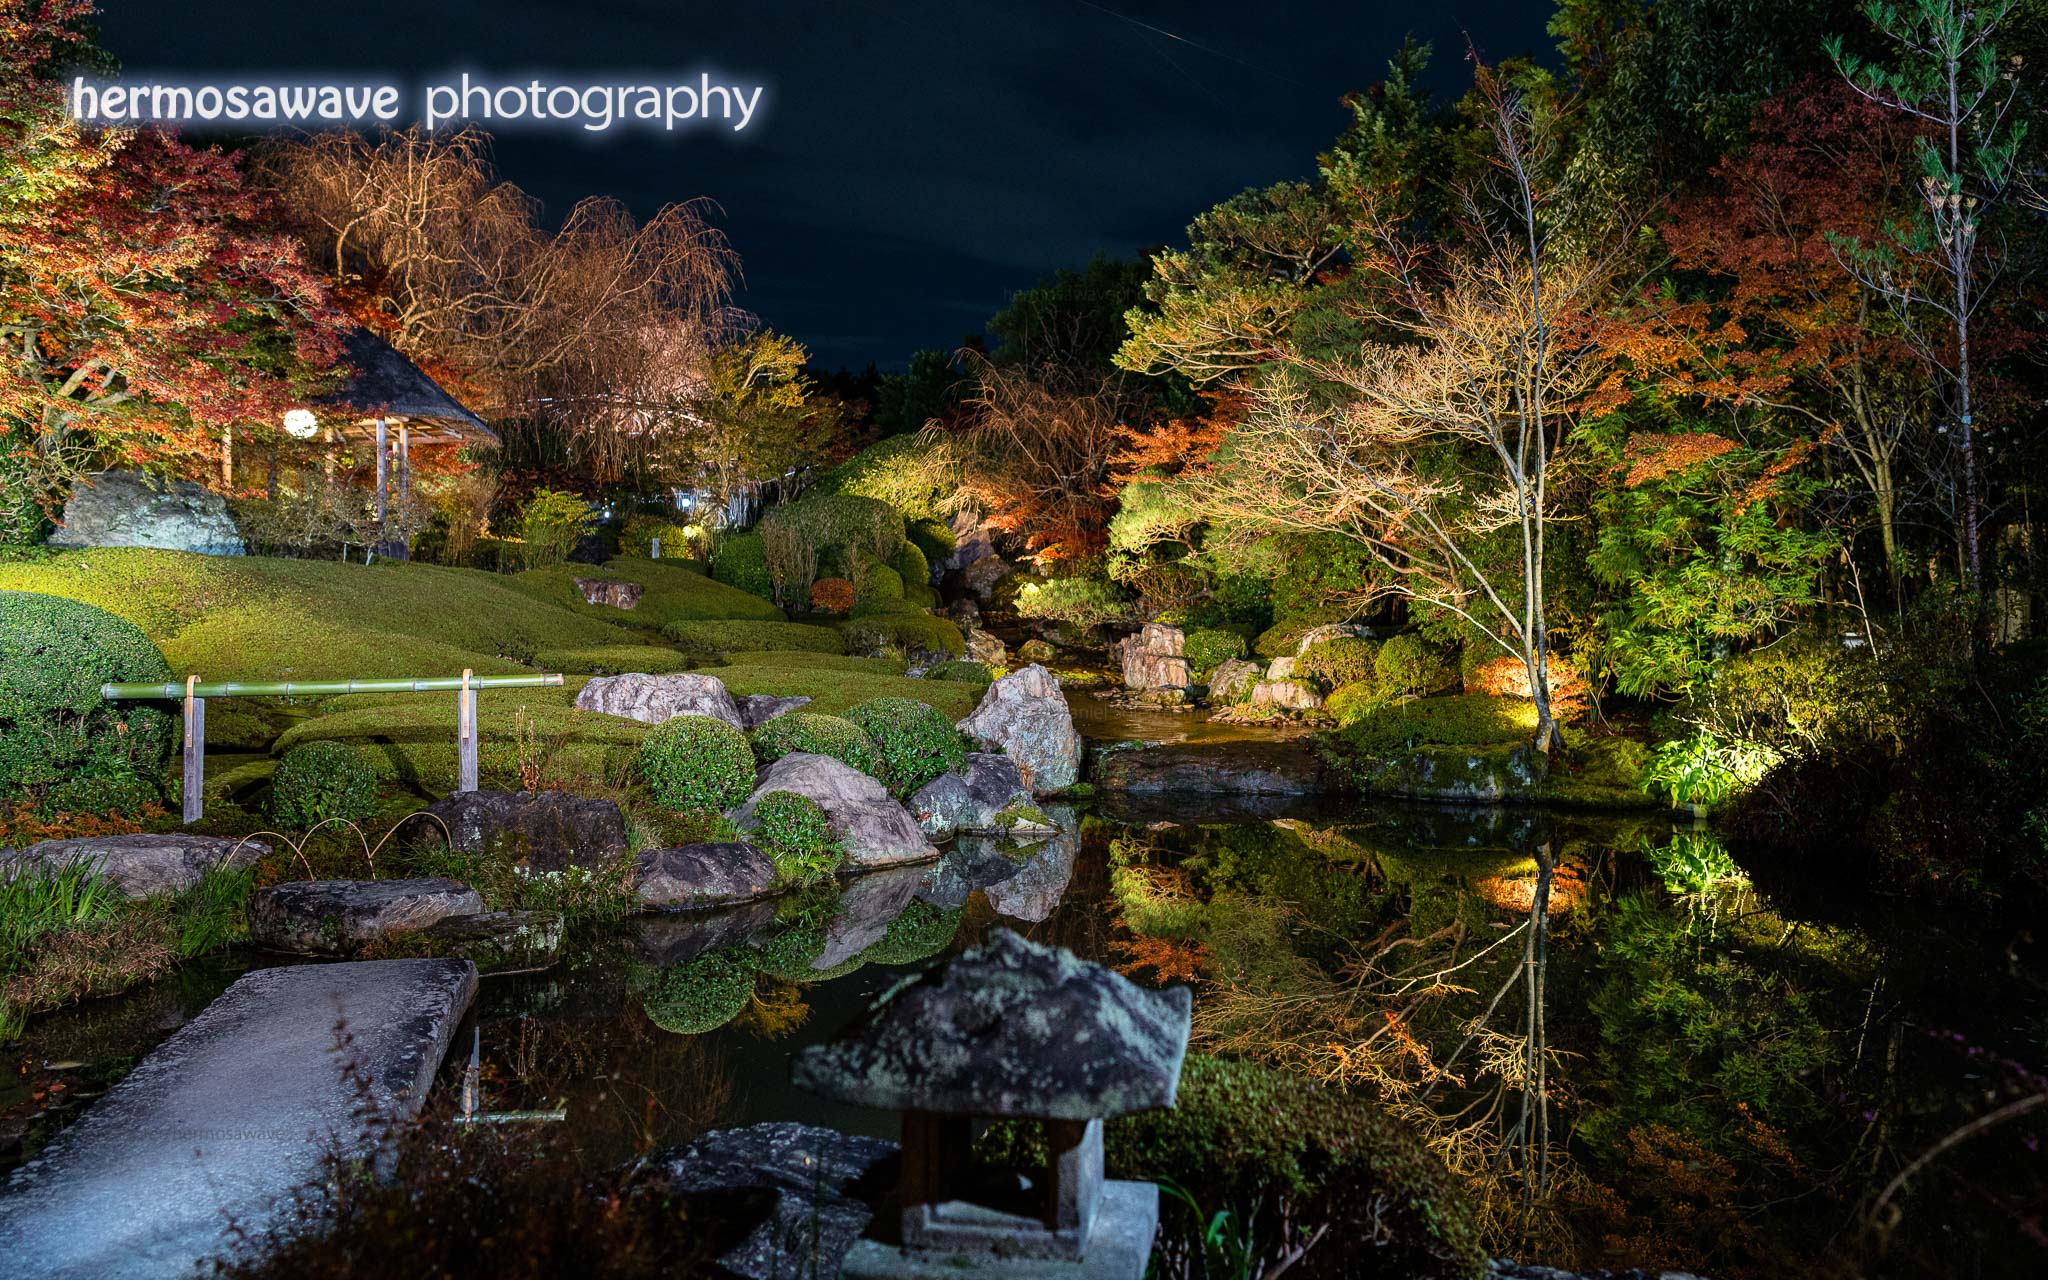 Evening at Taizo-in・退蔵院の夜